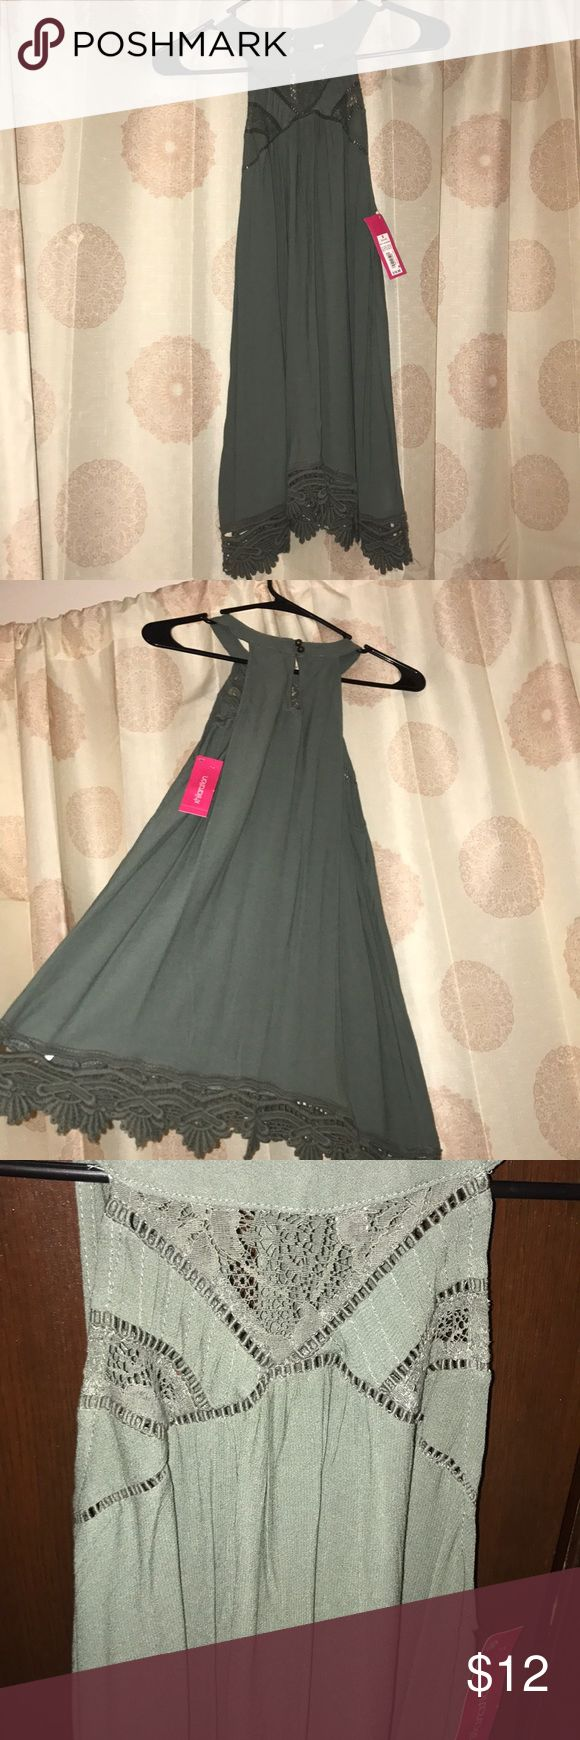 NWT high neckline blouse with lace Brand new with tag, beautiful army green flowing blouse with high lace neck line and lace bottom trim. Xhilaration Tops Tank Tops